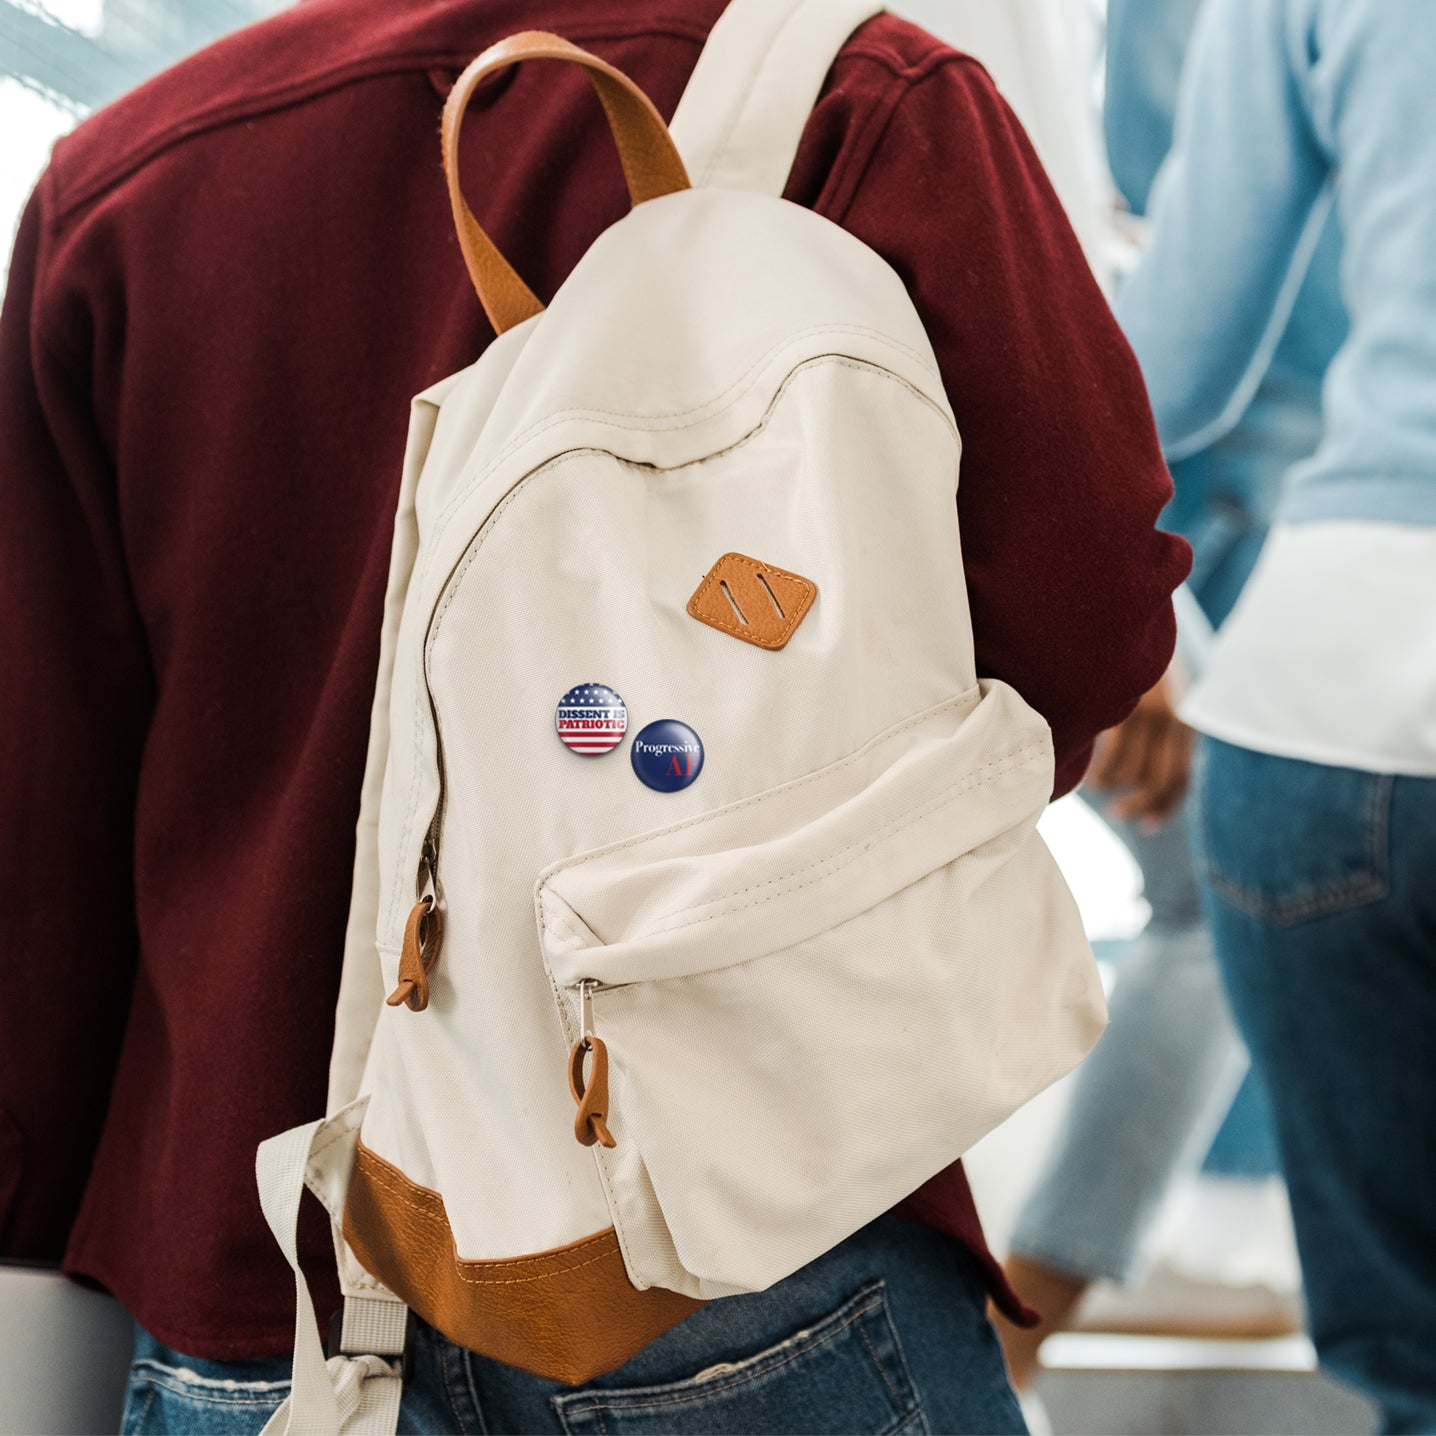 progressive af buttons on knapsack